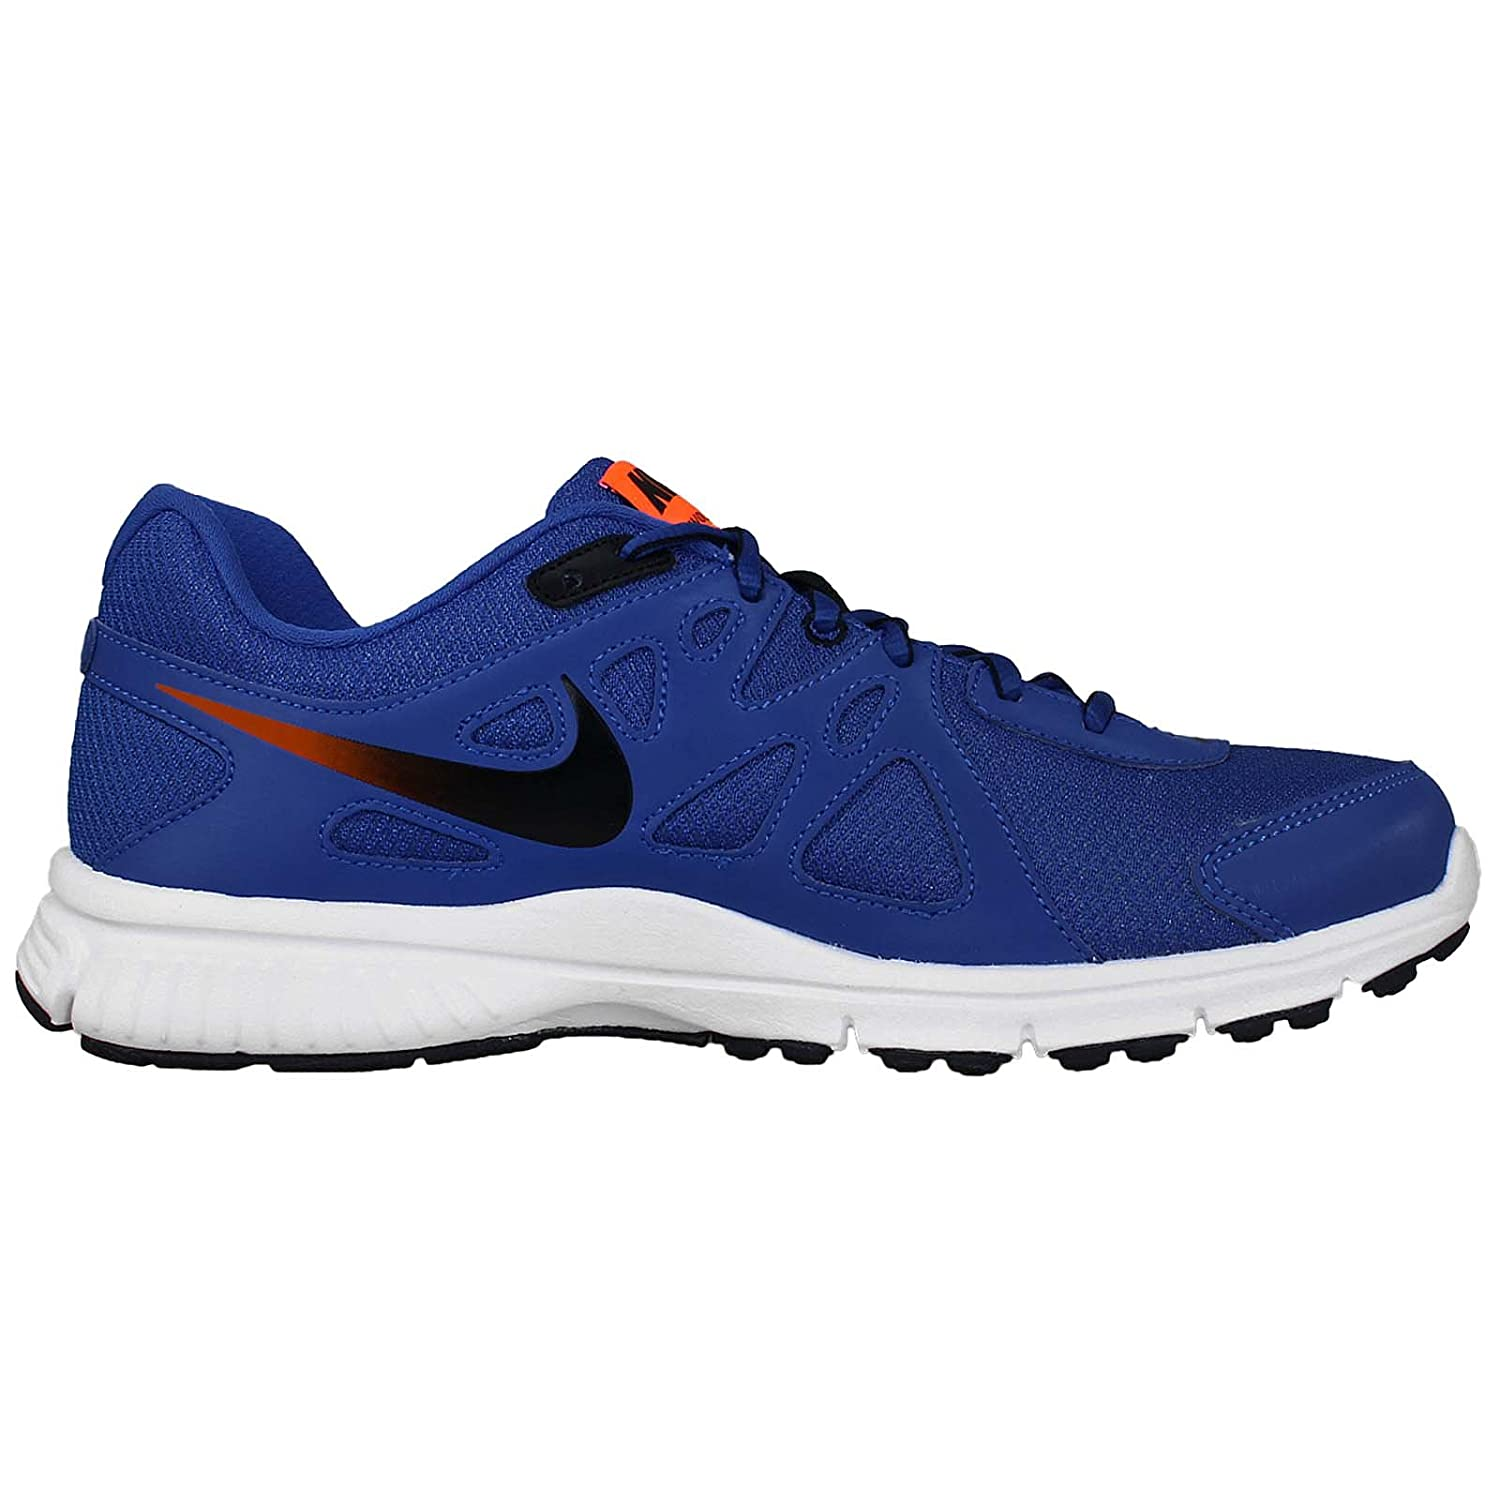 huge discount 9b803 b58dc Nike Men s Blue Mesh Running Shoes (554954-409) - (12 Uk India(47.5 Eu))   Buy Online at Low Prices in India - Amazon.in